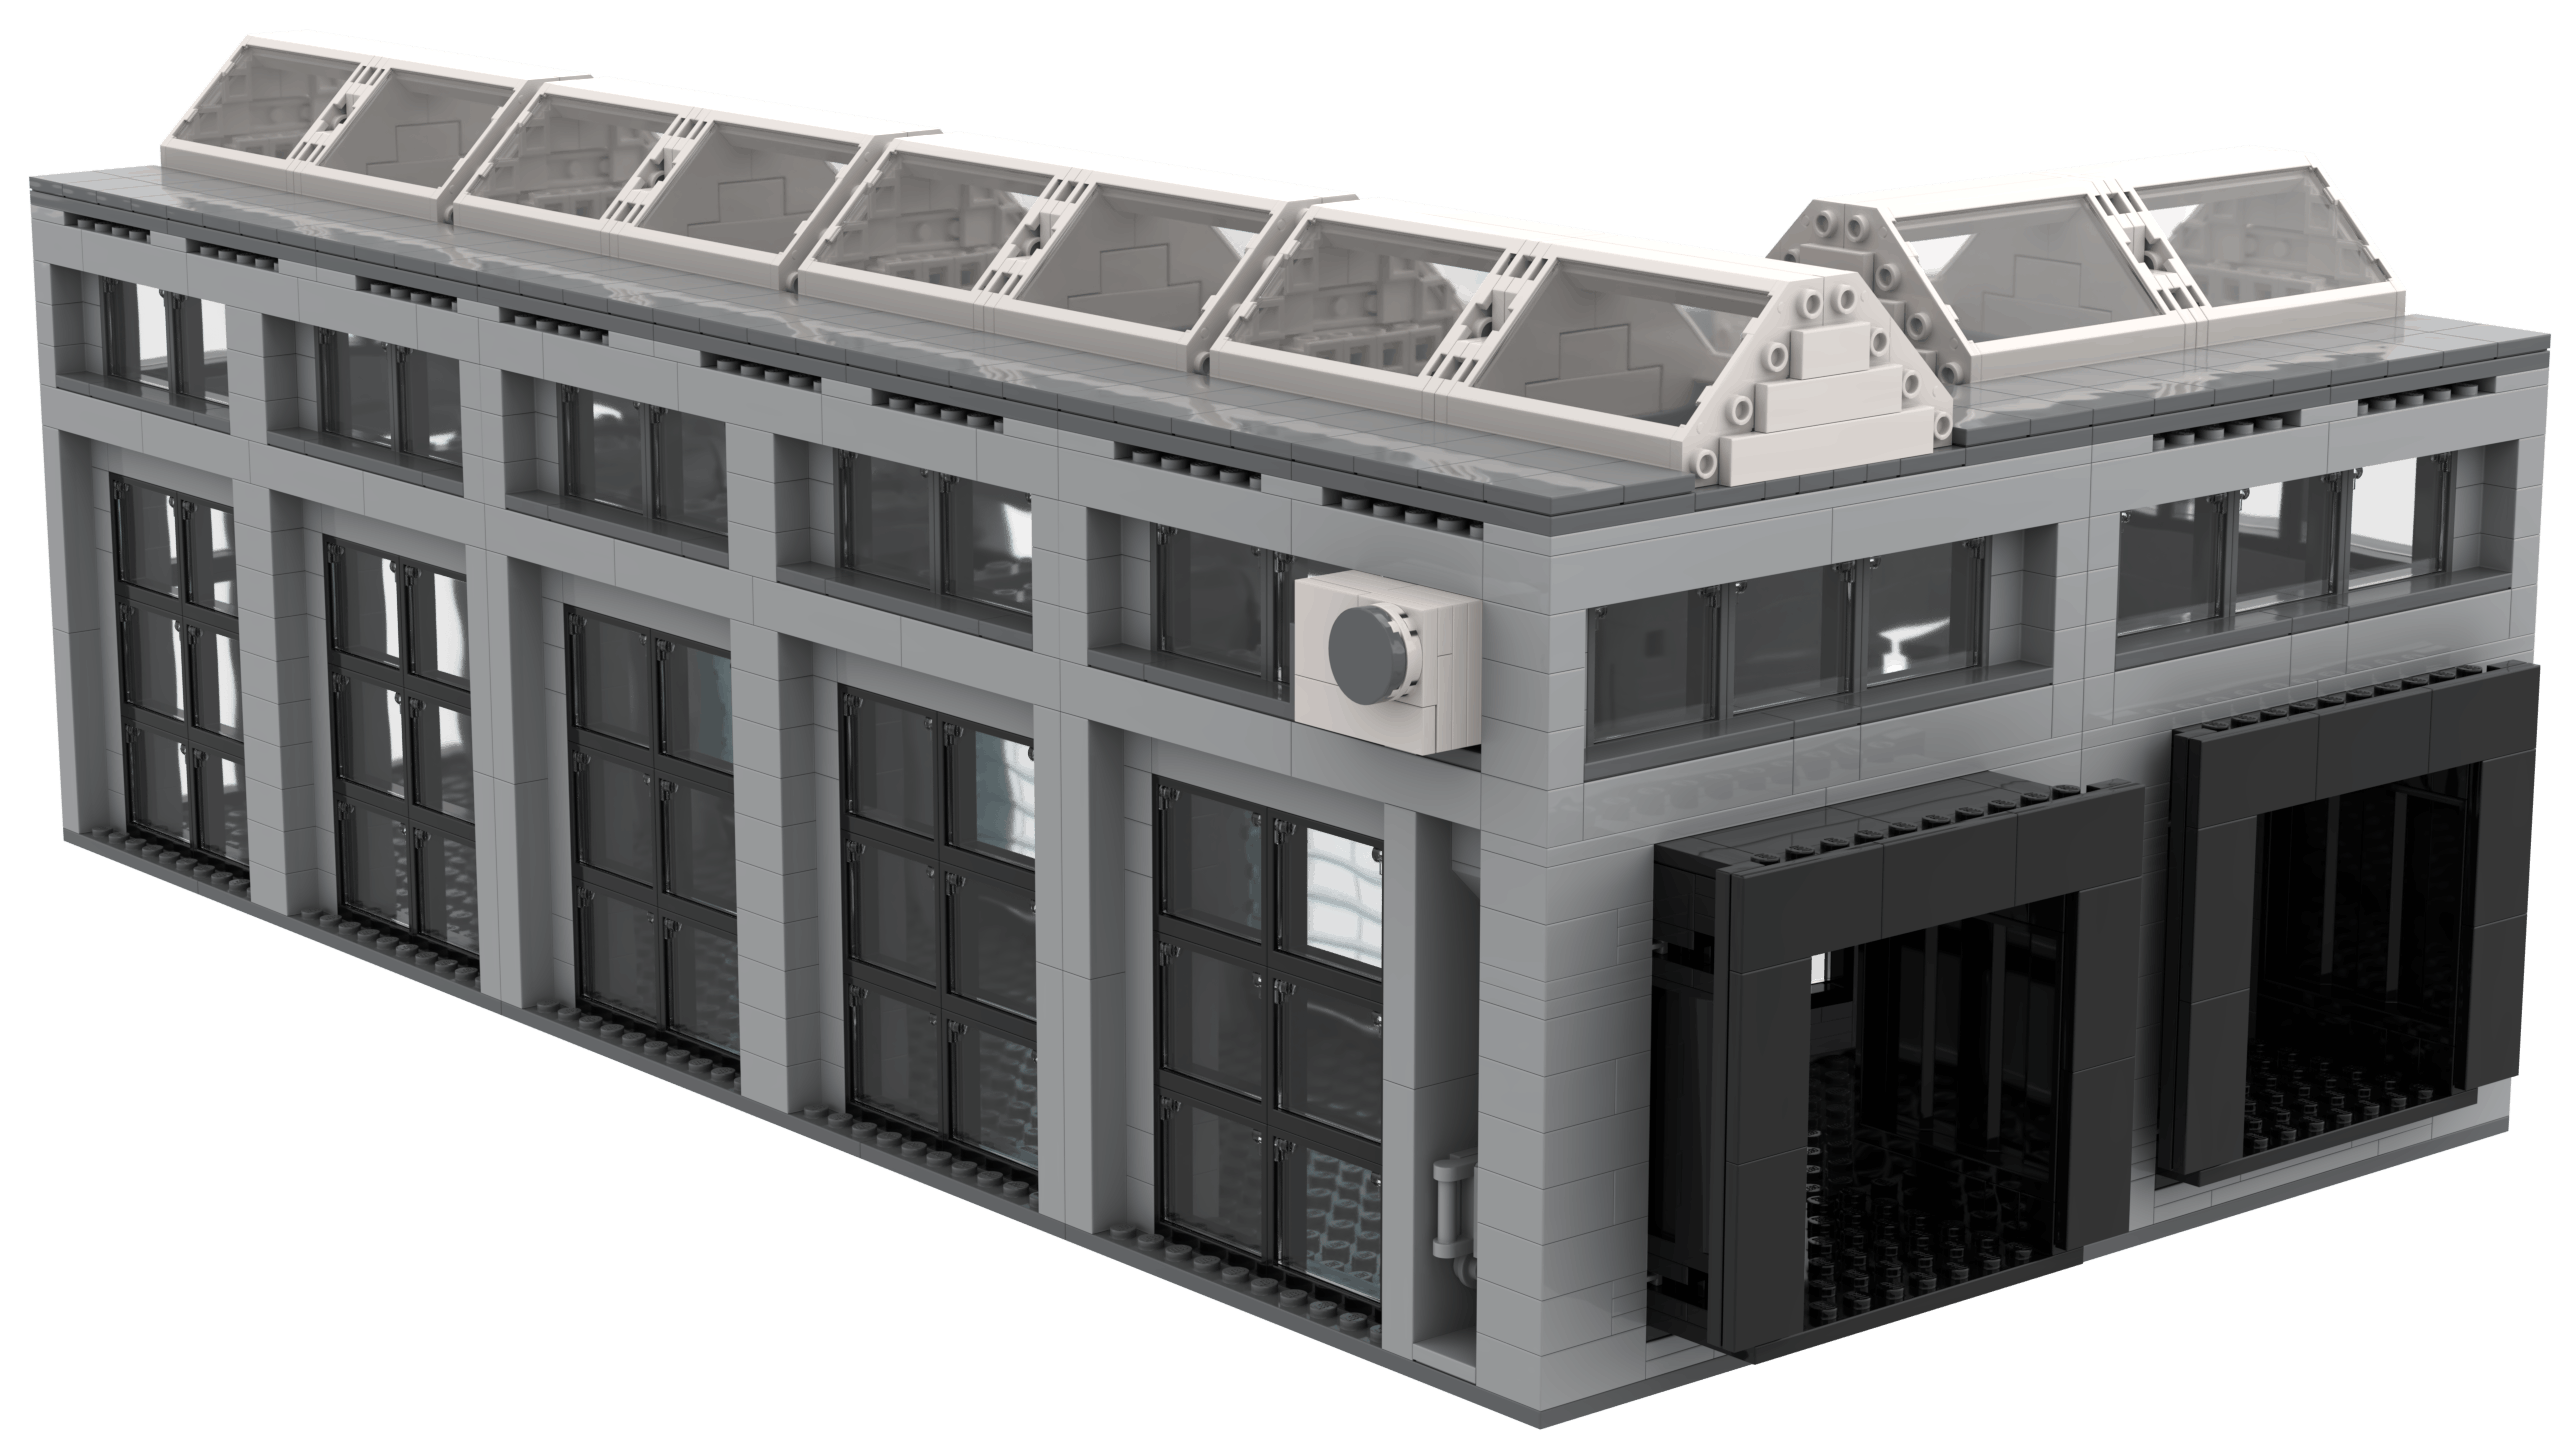 3D render of the backside of the Logistics Terminal MOC. Rendered using Stud.io.